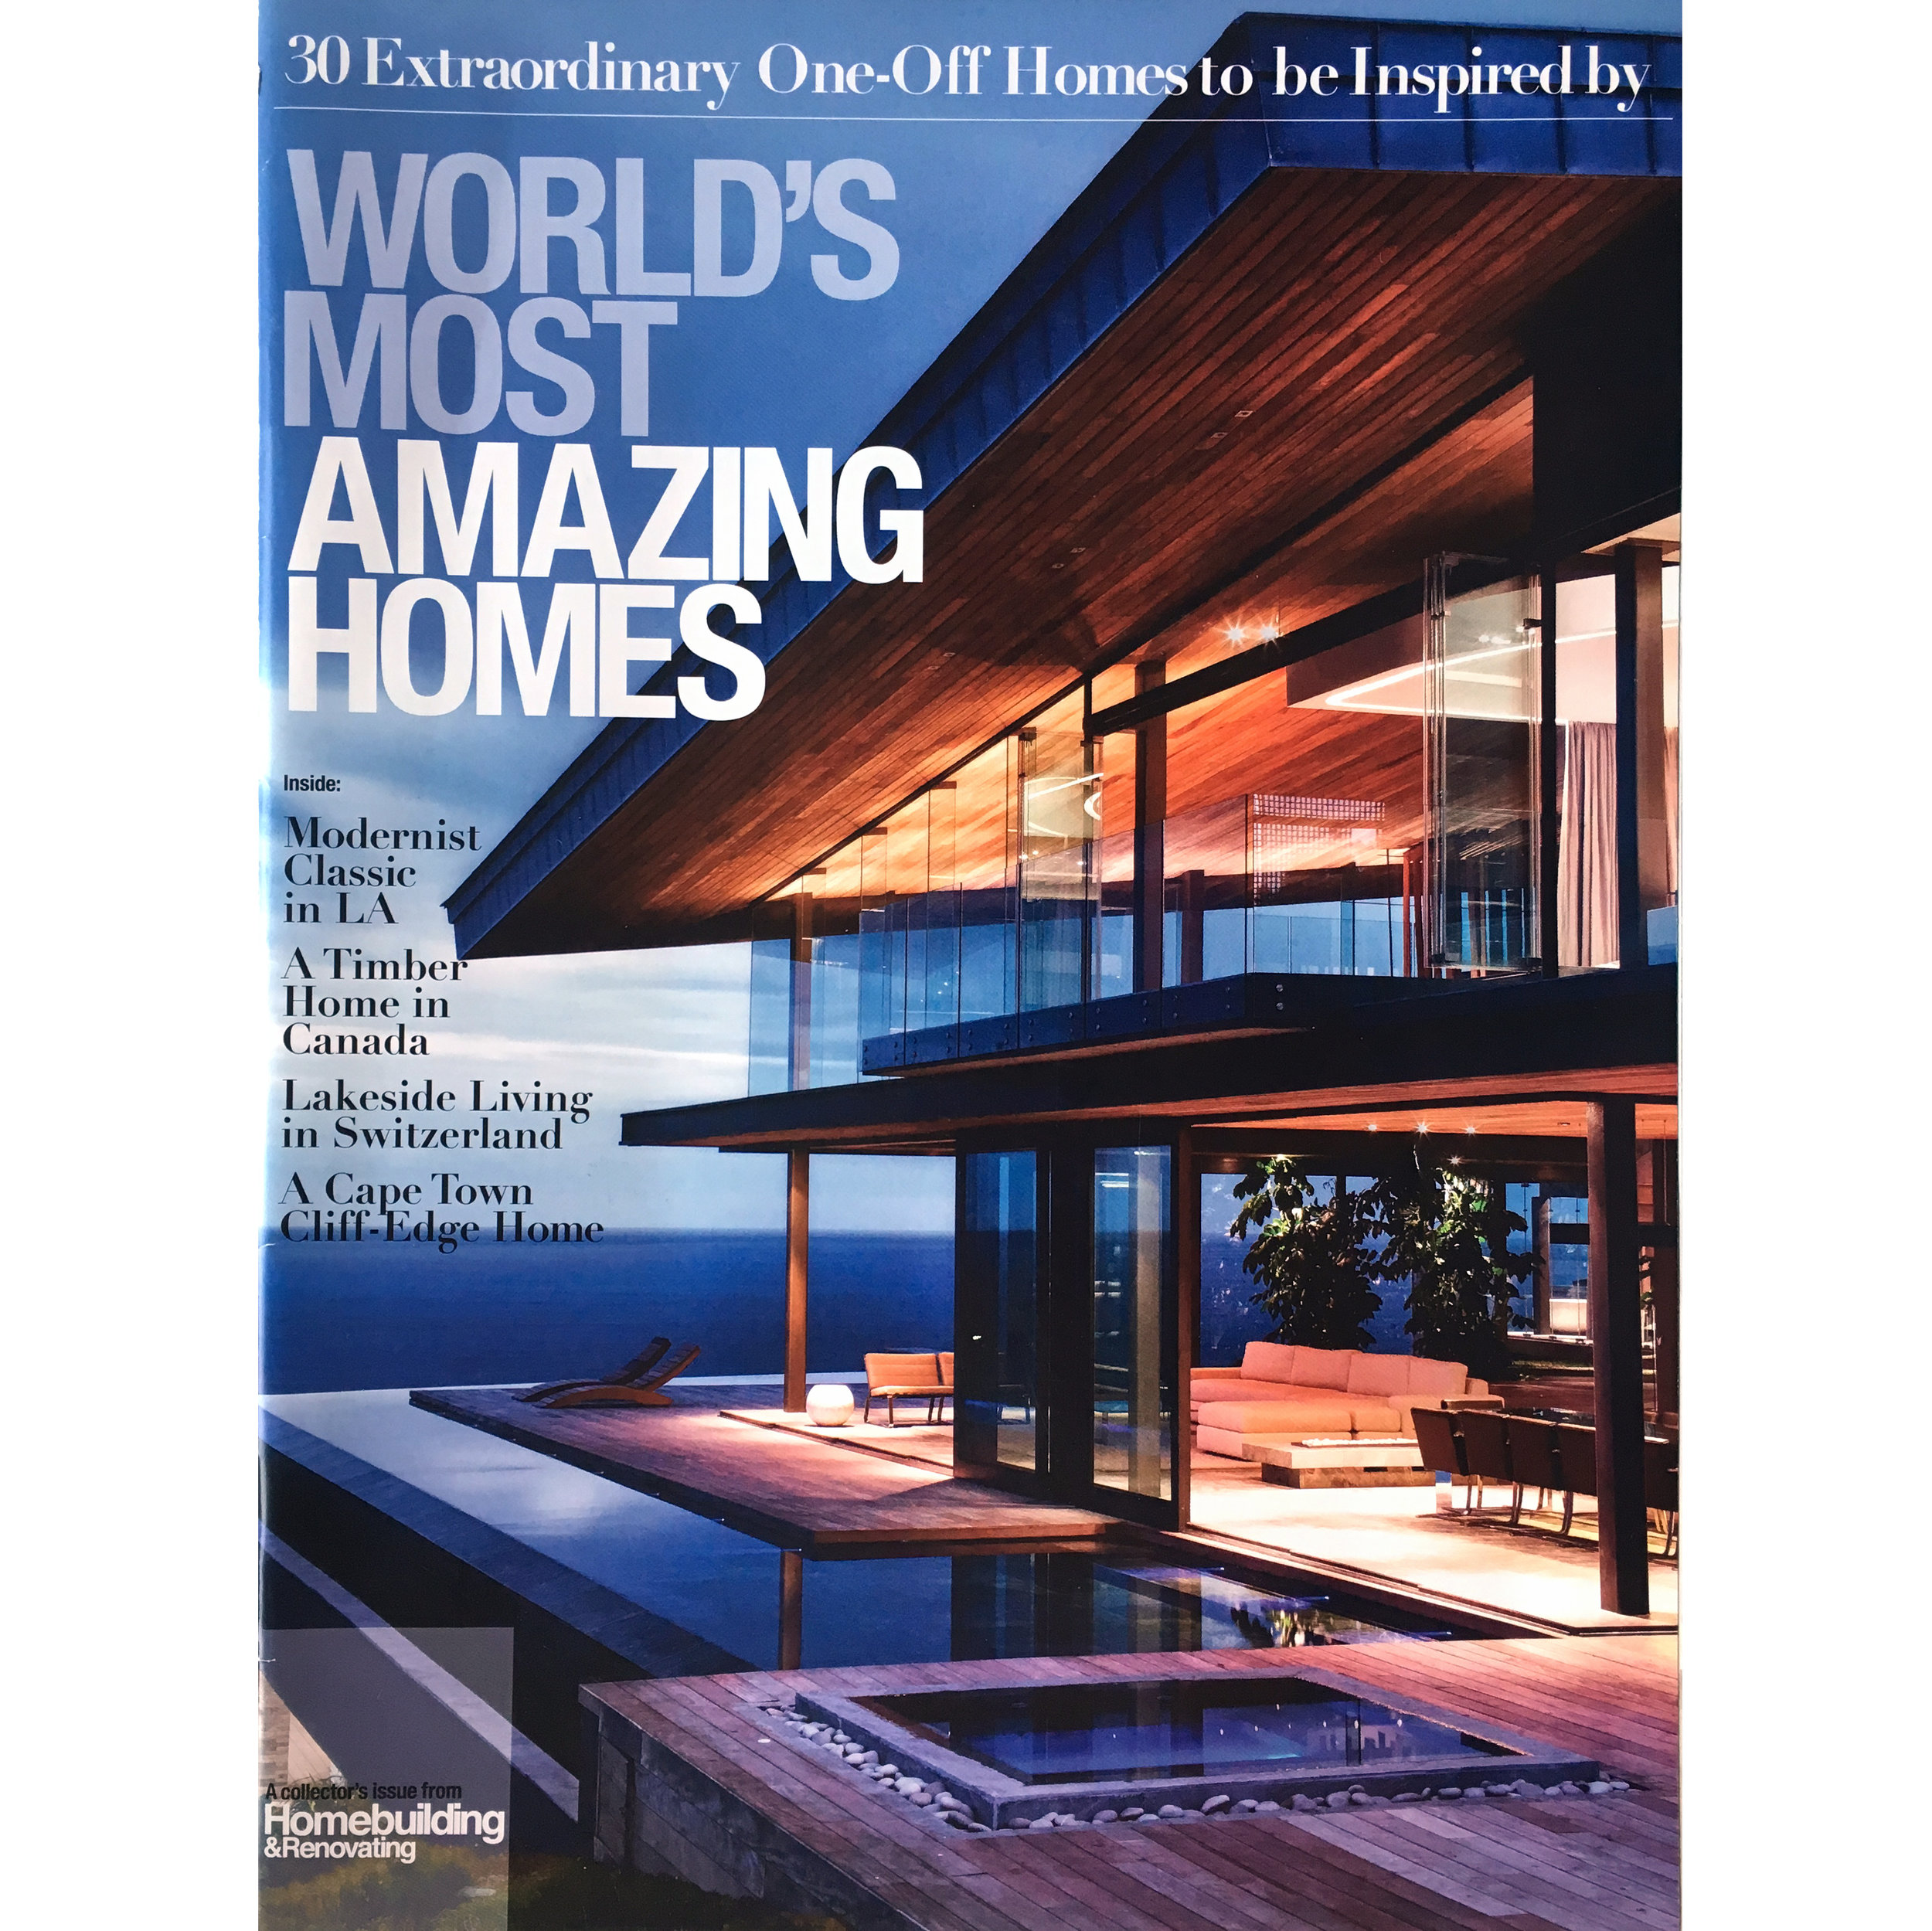 The World's most amazing homes. 2014